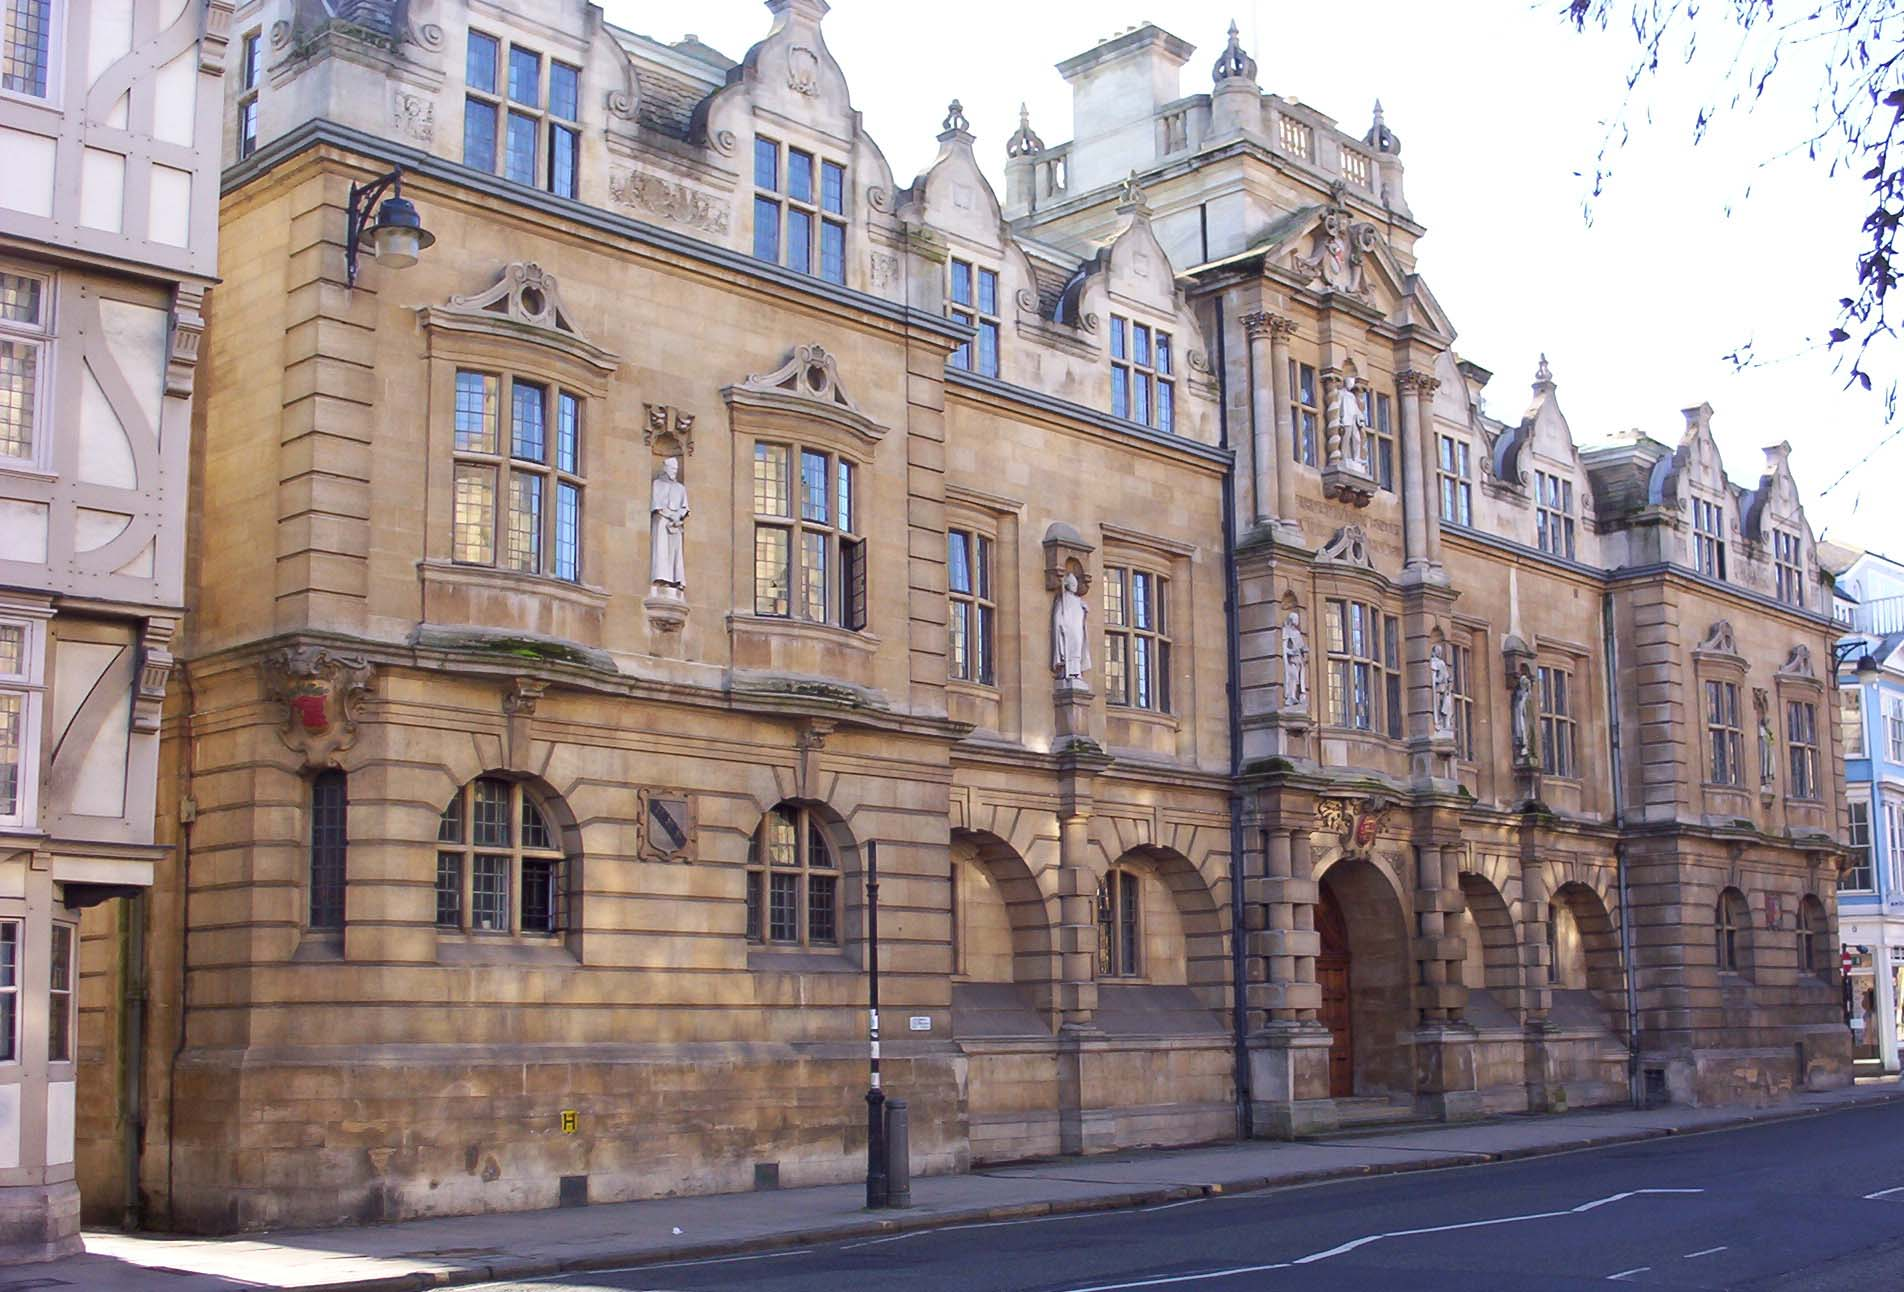 File:Oriel College Rhodes Building.JPG - Wikimedia Commons